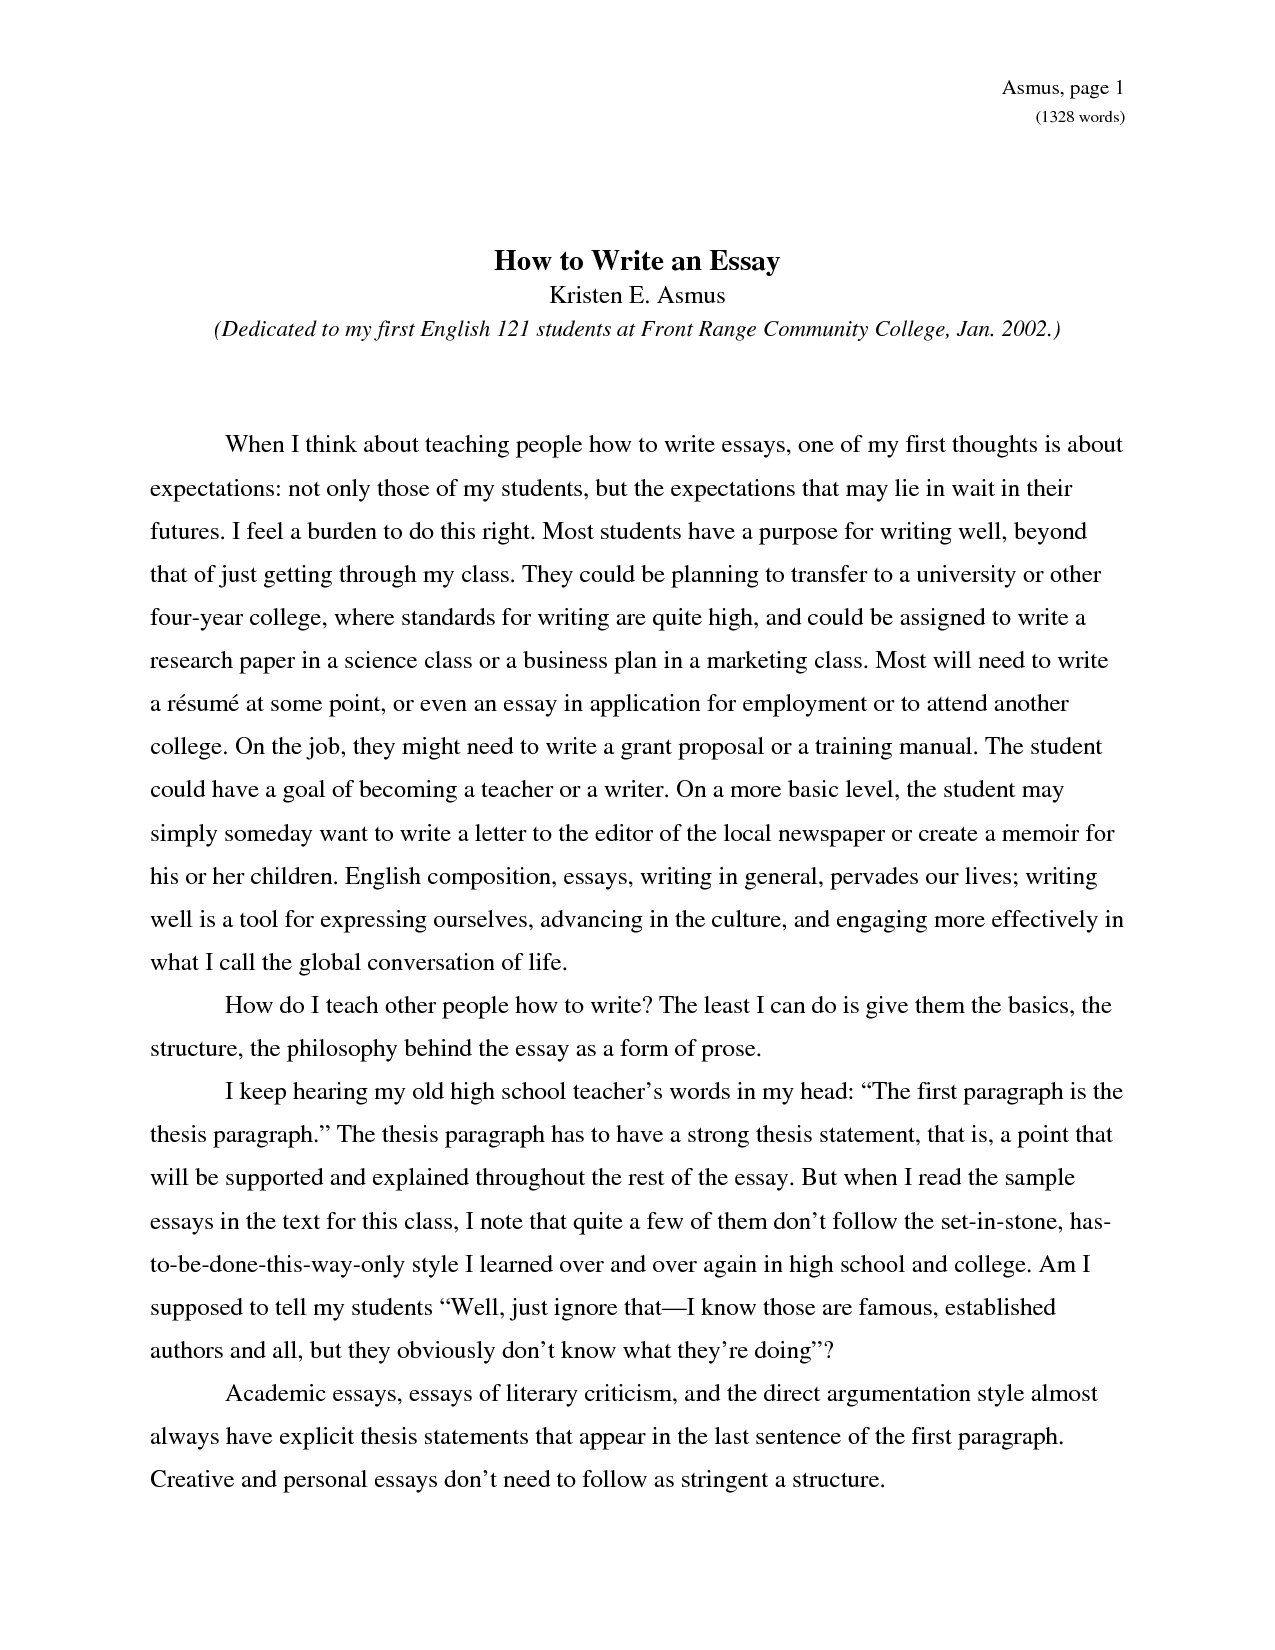 Writing an Essay - The Way To Structure Your Essay - Canapes and Co